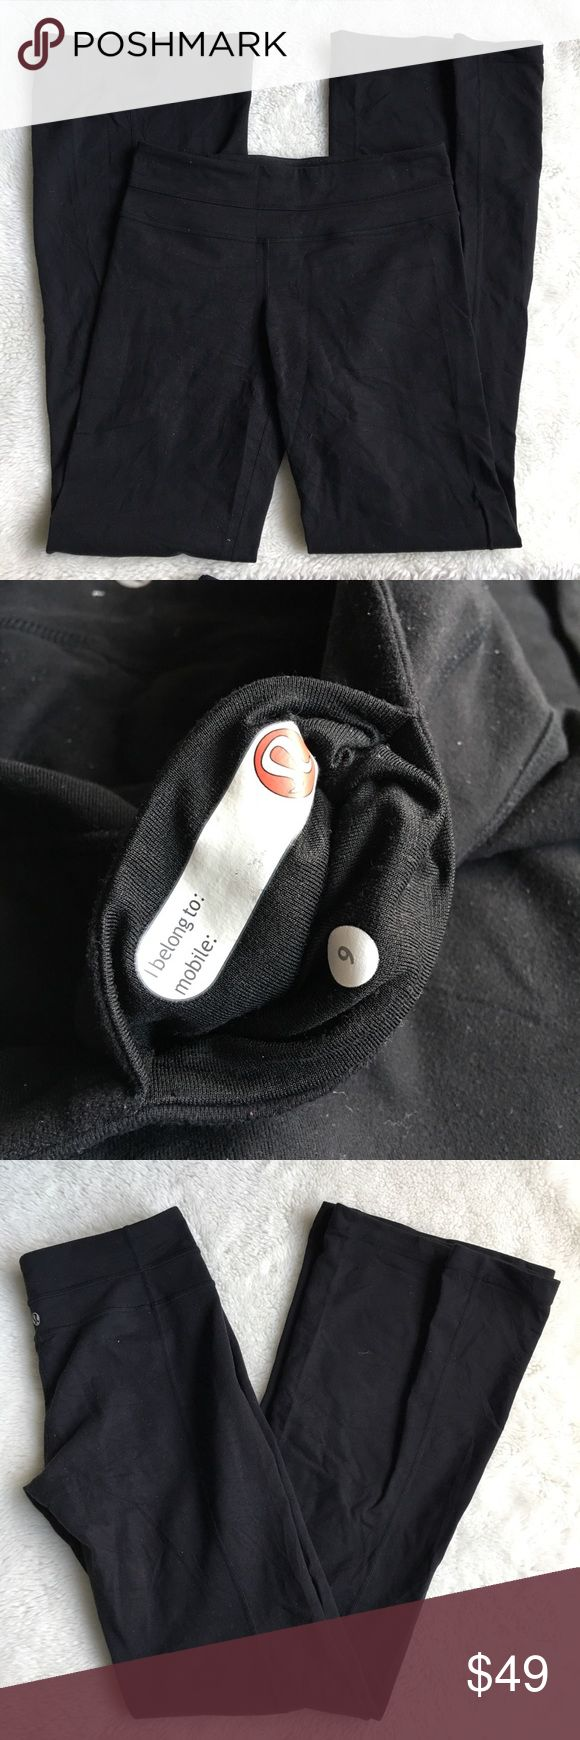 Lululemon Black Pants size 6 Pre-owned authentic Lululemon Black Pants size 6. Please look at pictures for better reference. Happy Shopping! lululemon athletica Pants